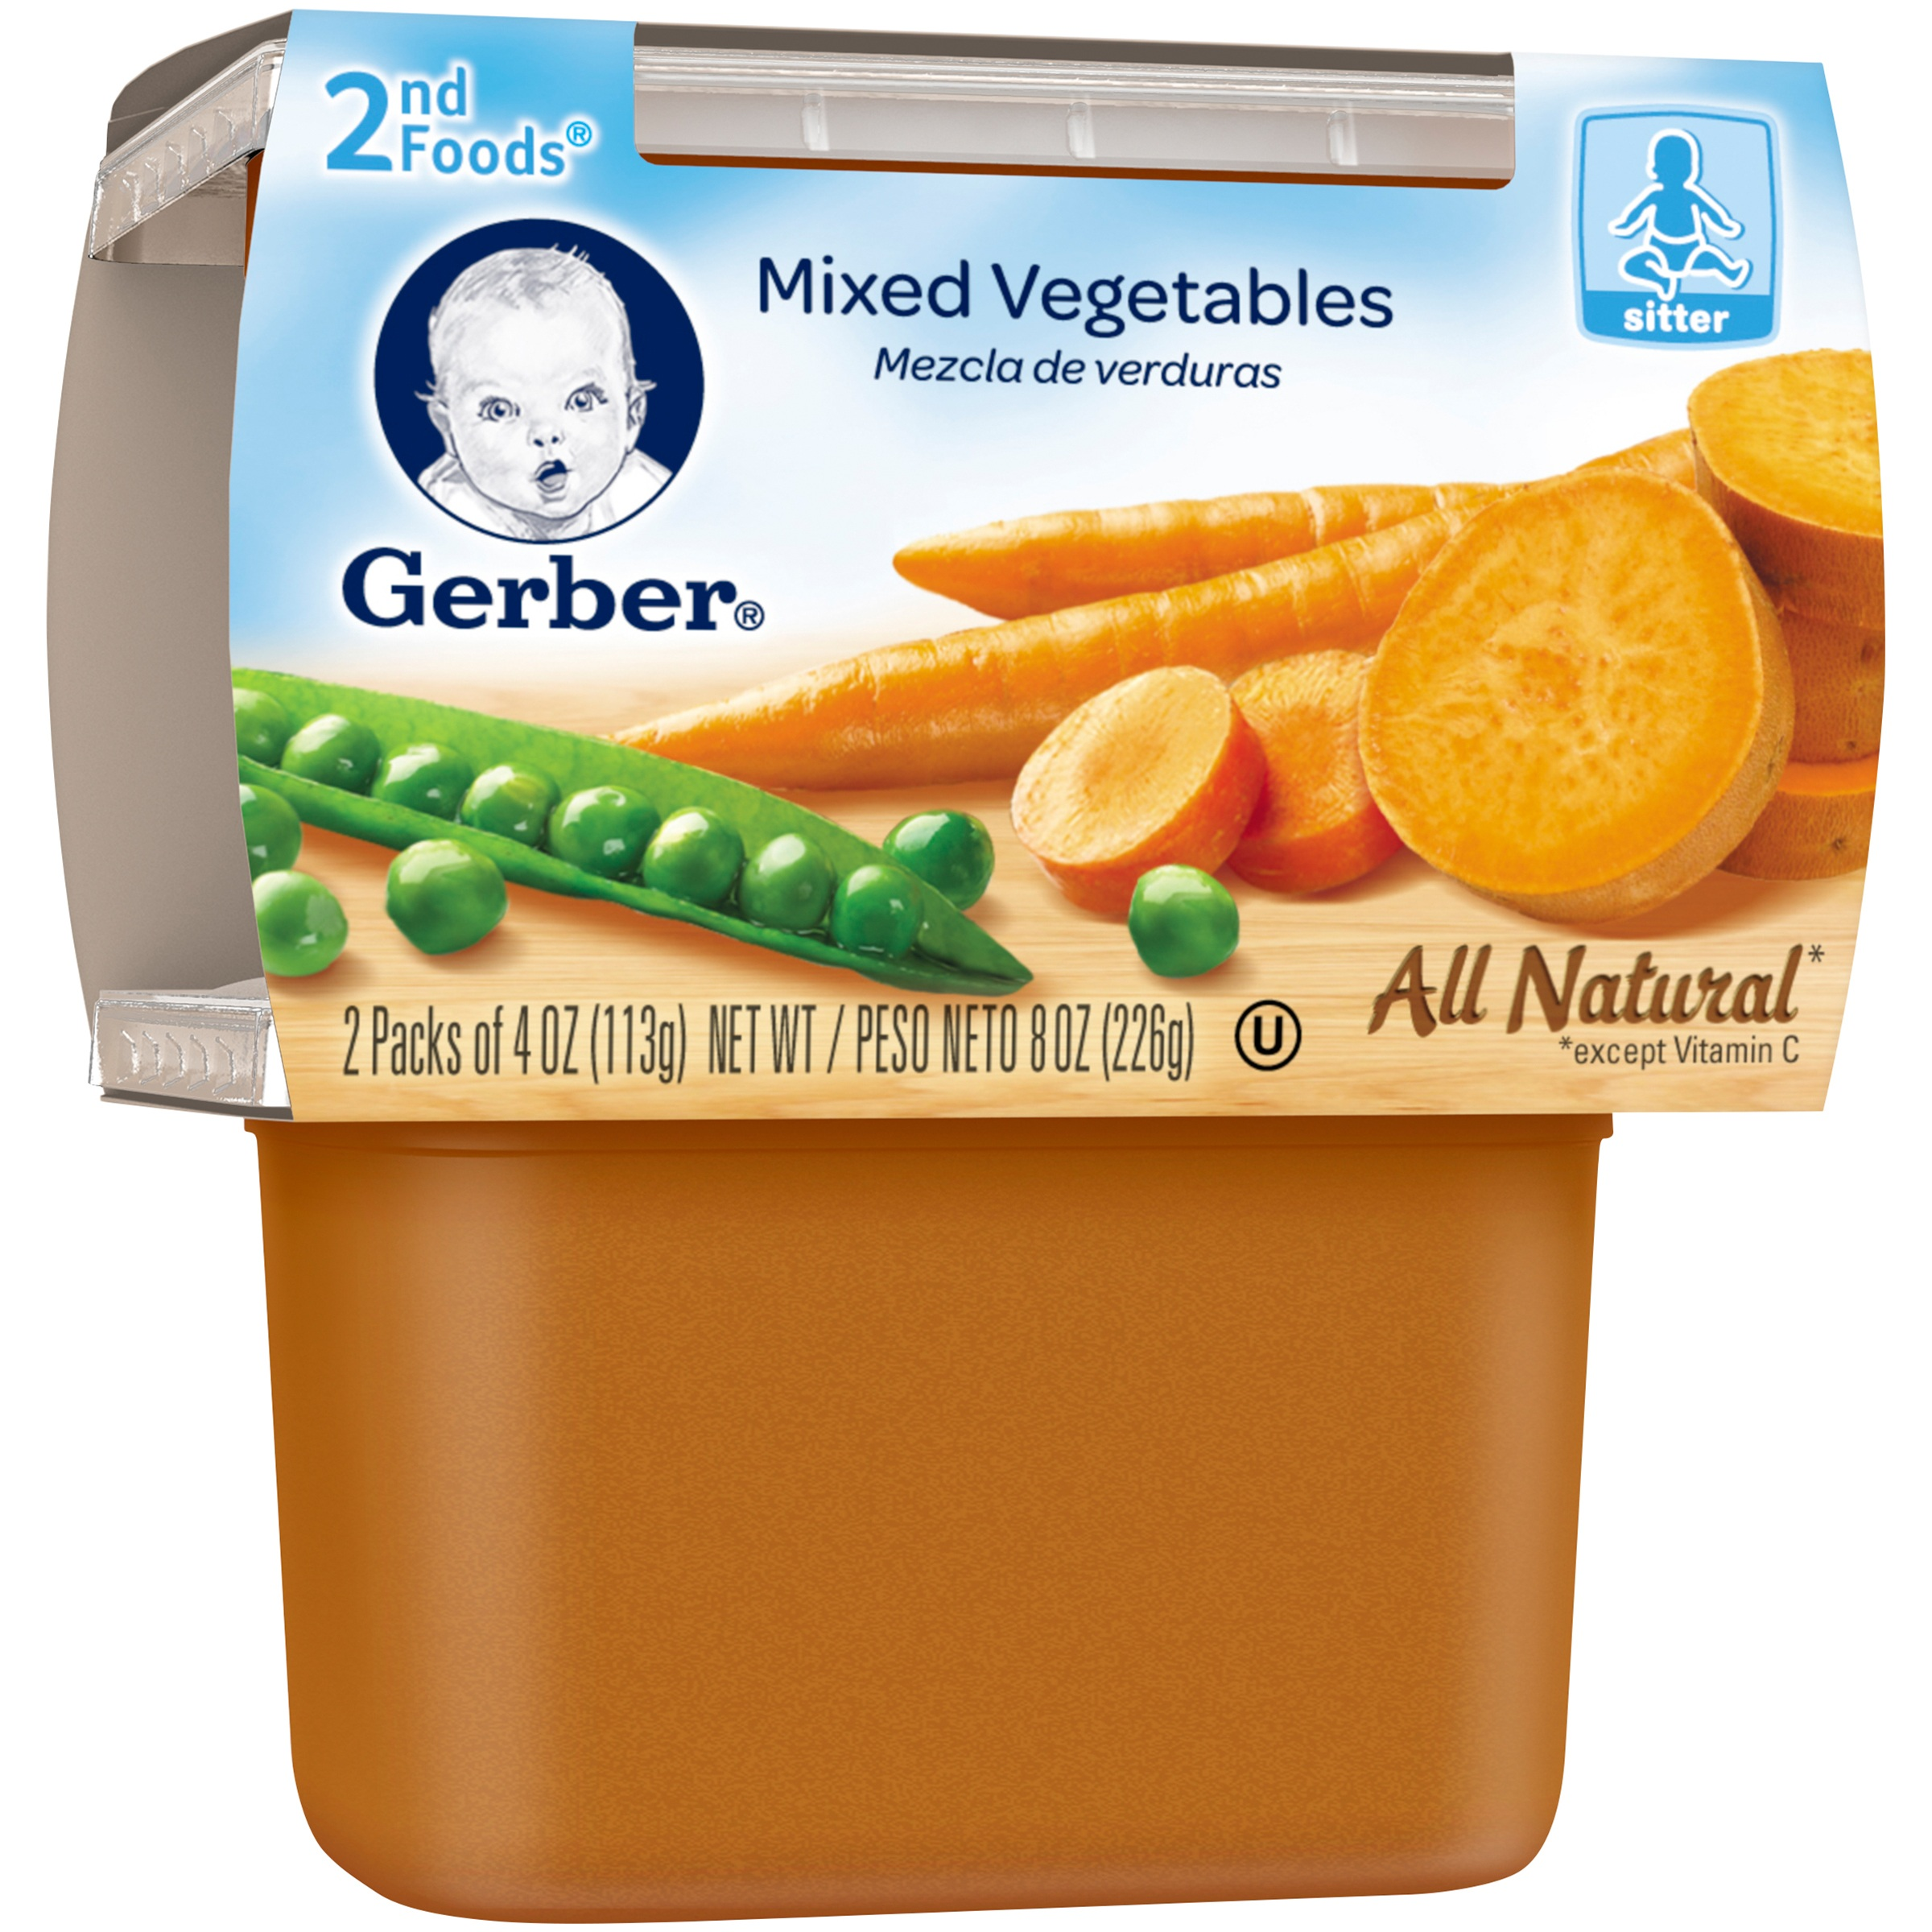 Gerber® 2nd Foods® Mixed Vegetables Baby Food, 4 oz, 2 count